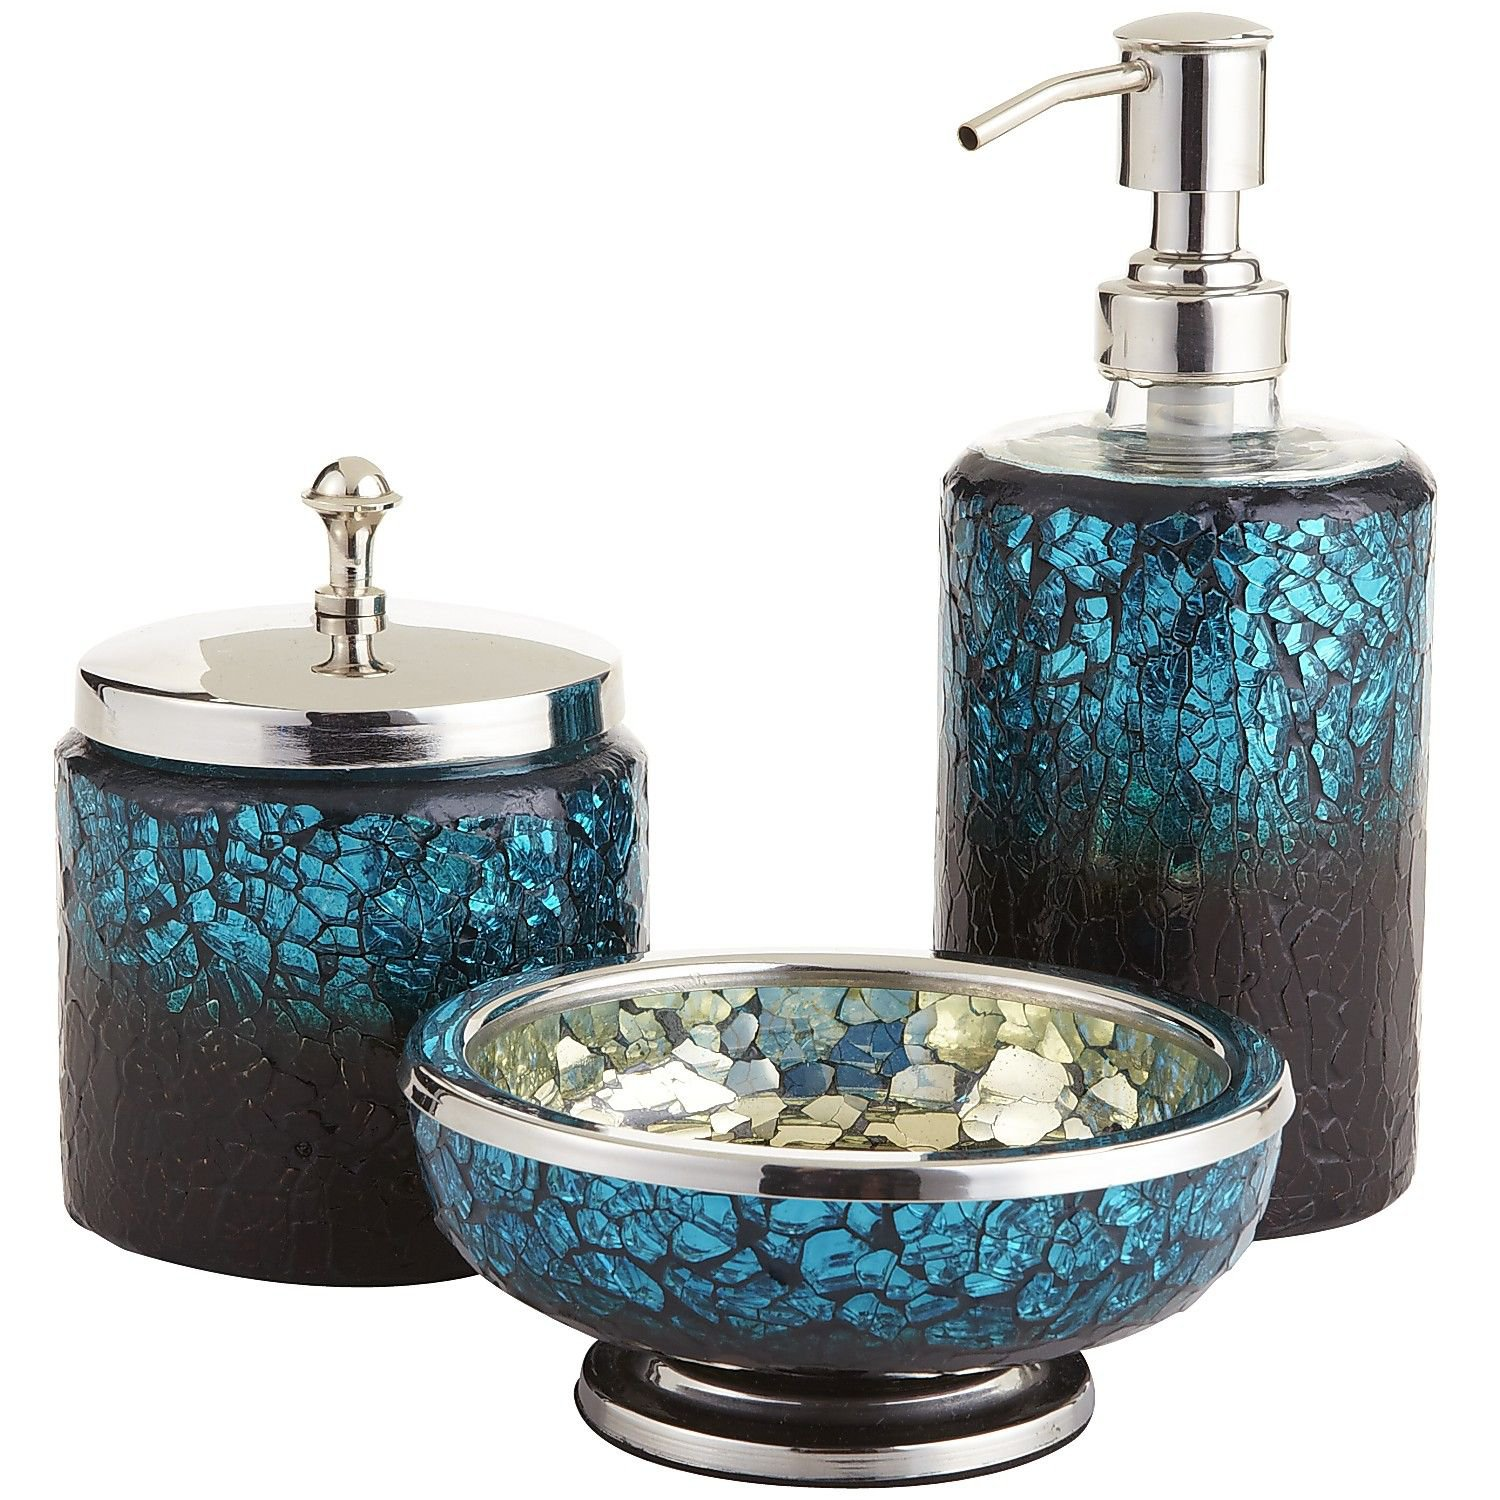 Peacock mosaic bath accessories from pier 1 imports for the for Blue glass bath accessories